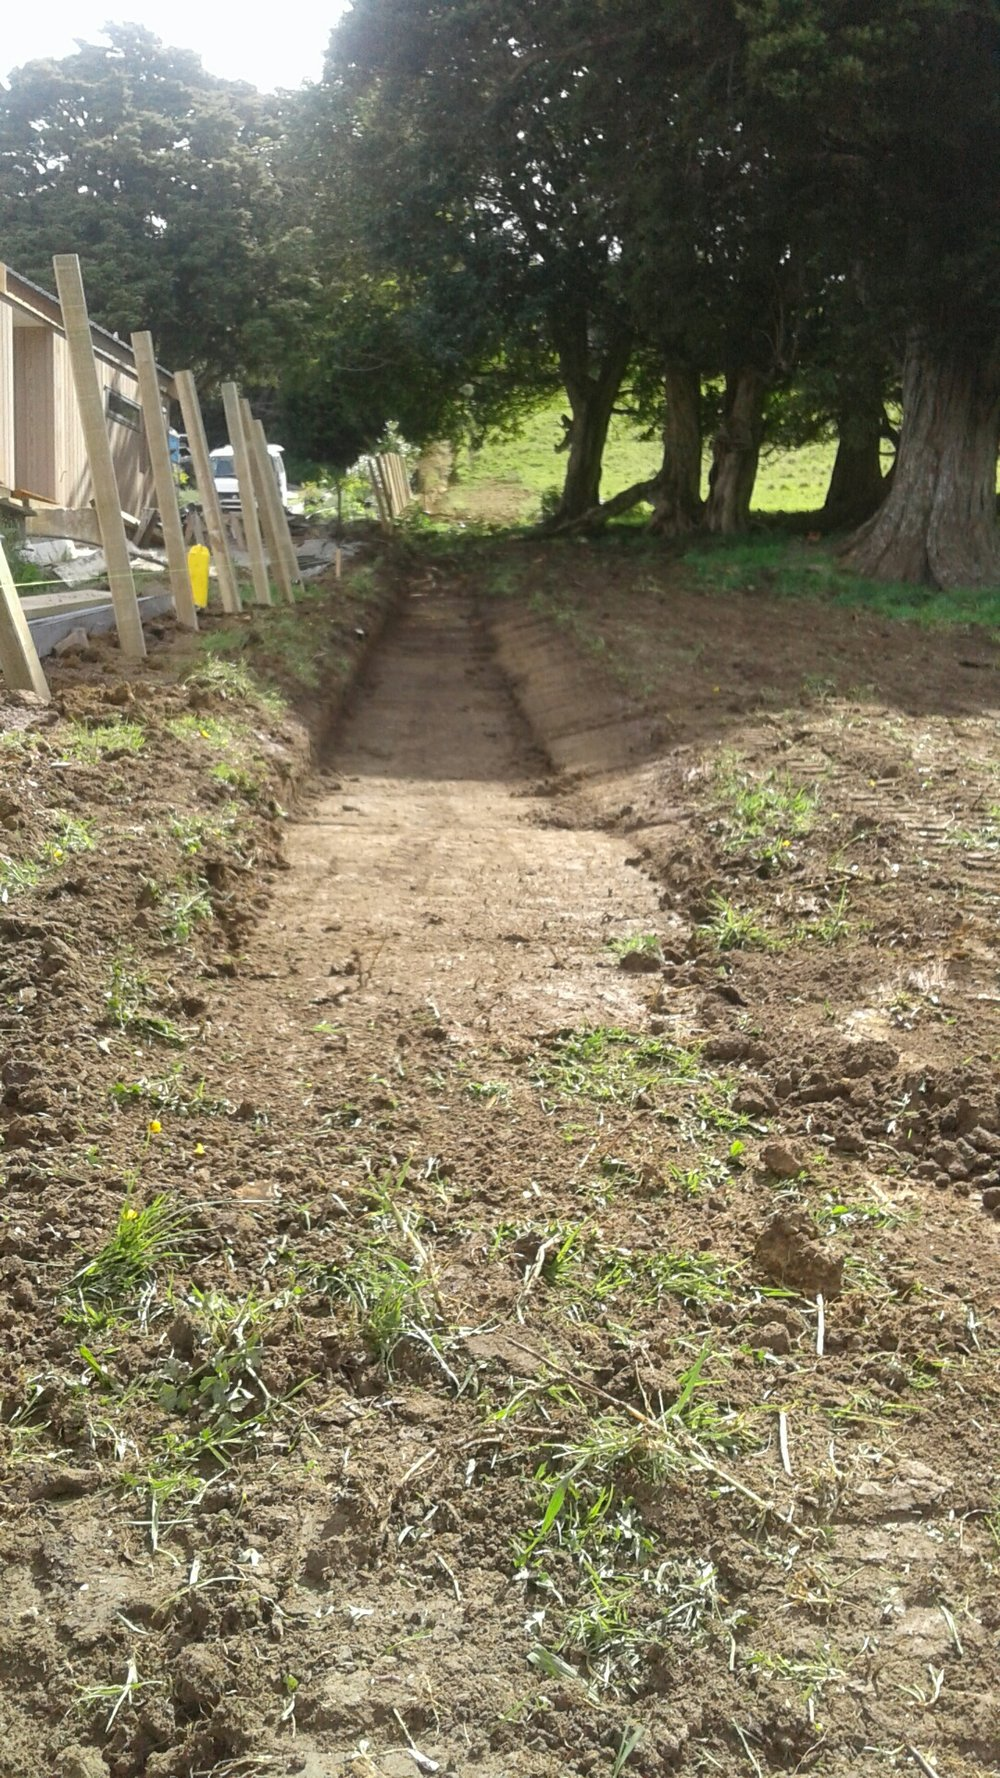 """Matakana: Swale Solution   When it rained, water ran through this property. No more water issues after the team constructed a """"swale"""" (an infiltration basin created to manage water runoff and improve rainwater control)"""